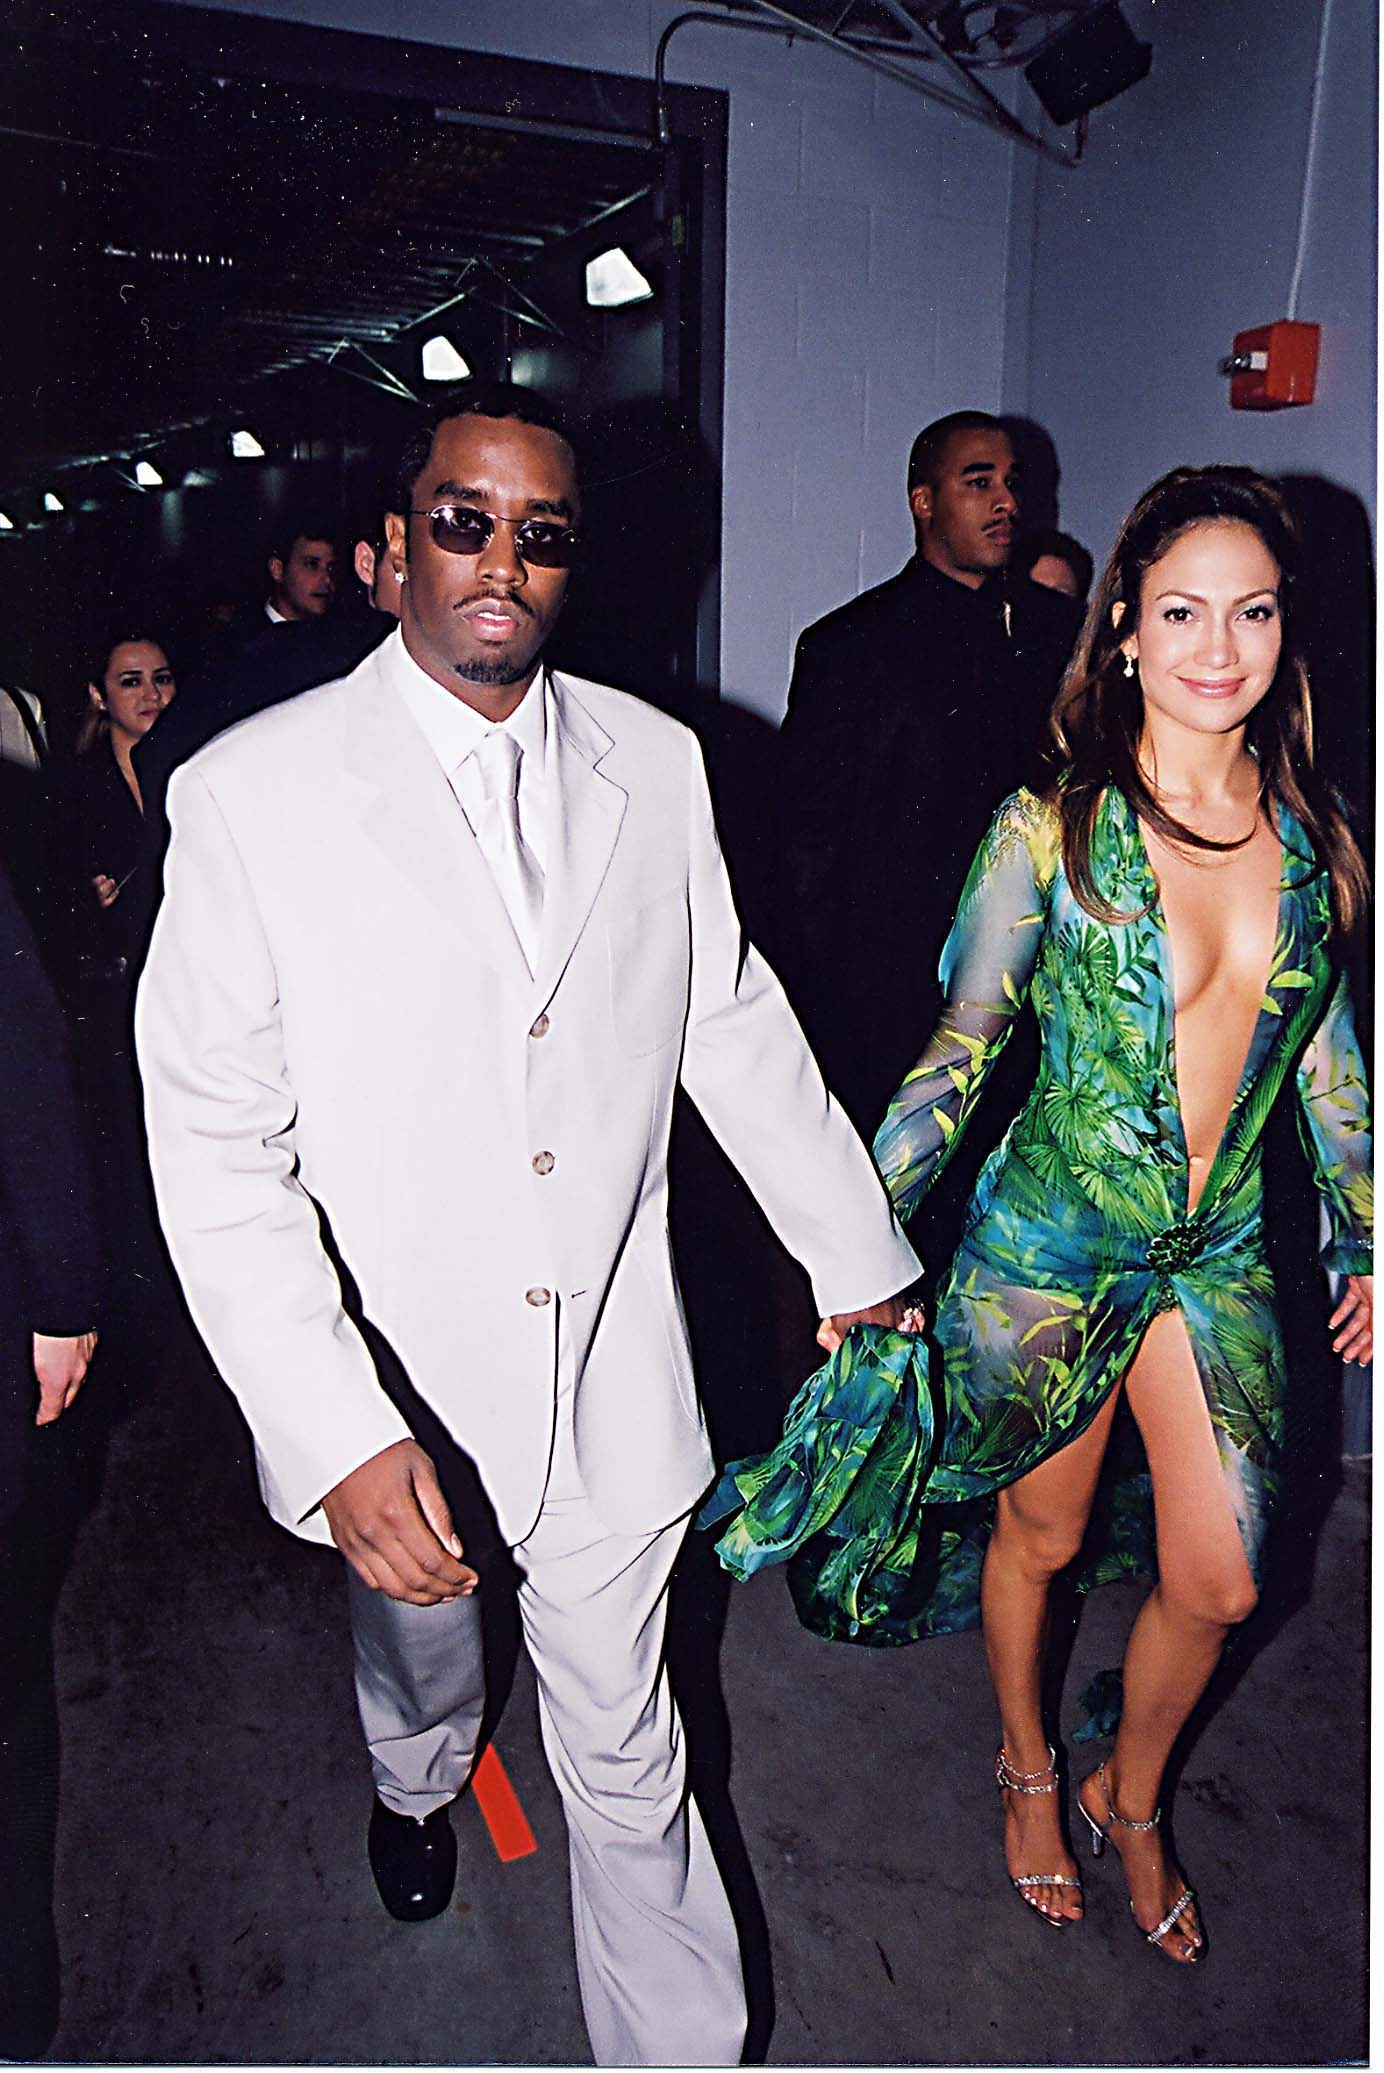 Sean Coombs & Jennifer Lopez during 2000 GRAMMY Awards at Staples Center in Los Angeles, California, United States. (Photo by Jeff Kravitz/FilmMagic, Inc)